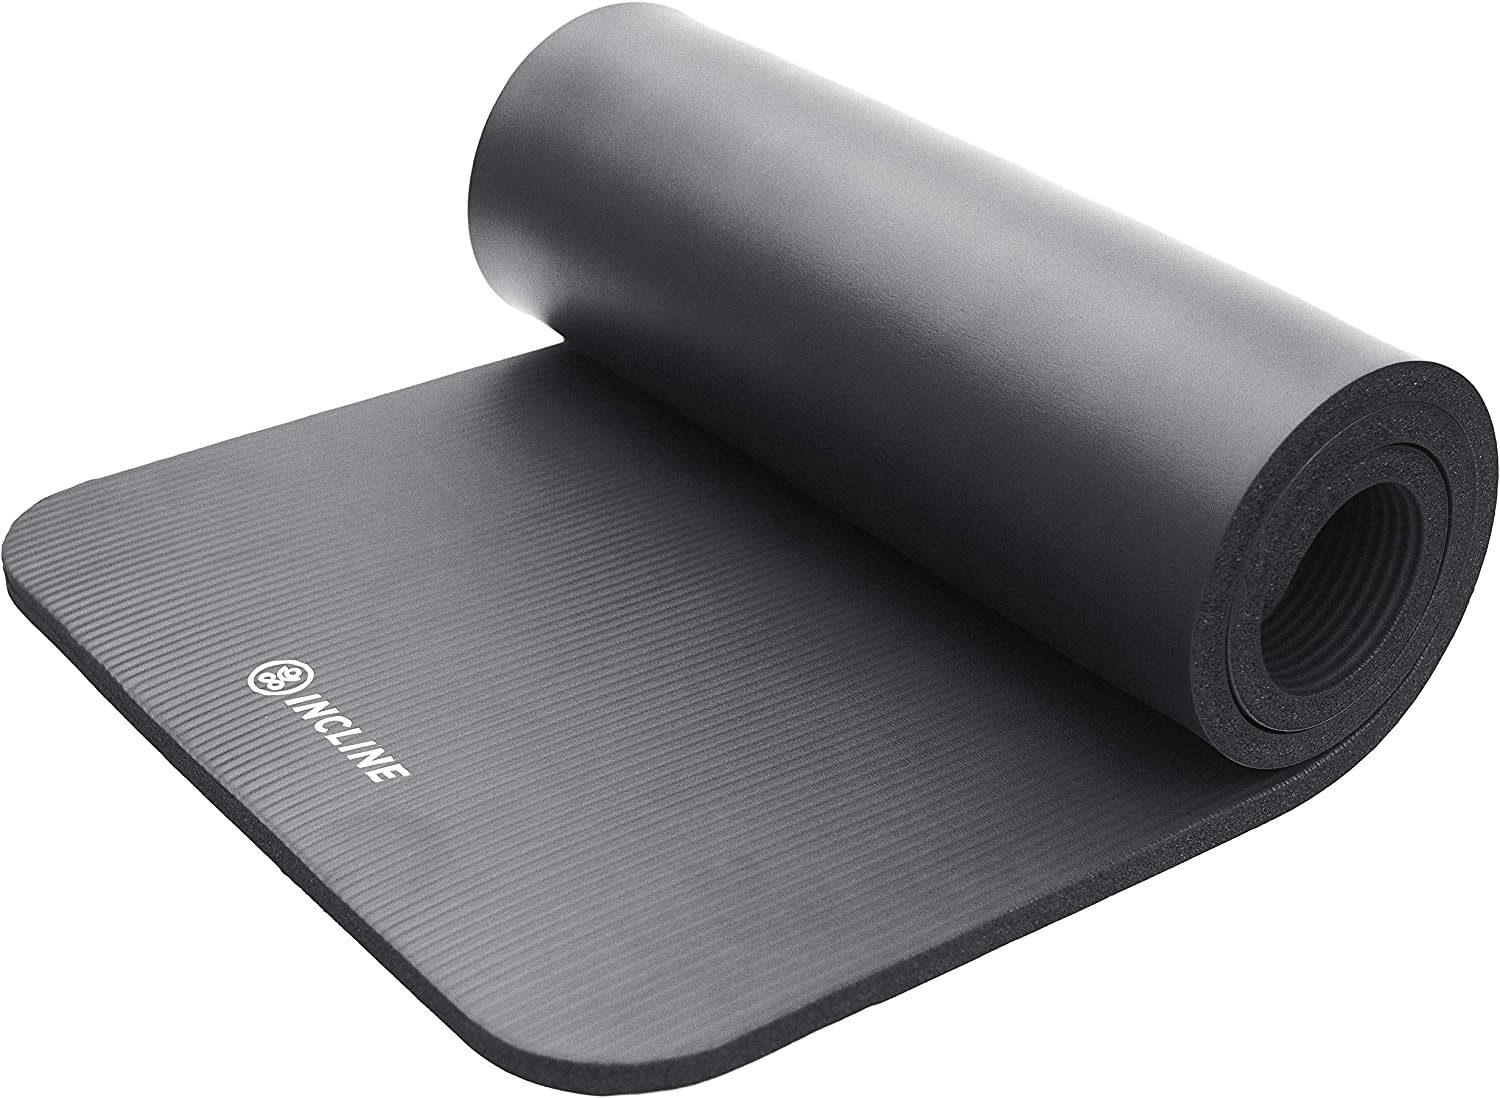 Incline Fit Extra Thick Exercise Mat w/ Carrying Strap - Non Slip & Comfortable Workout Mat For Yoga, Pilates, Stretching, Meditation, Floor & Fitness ...